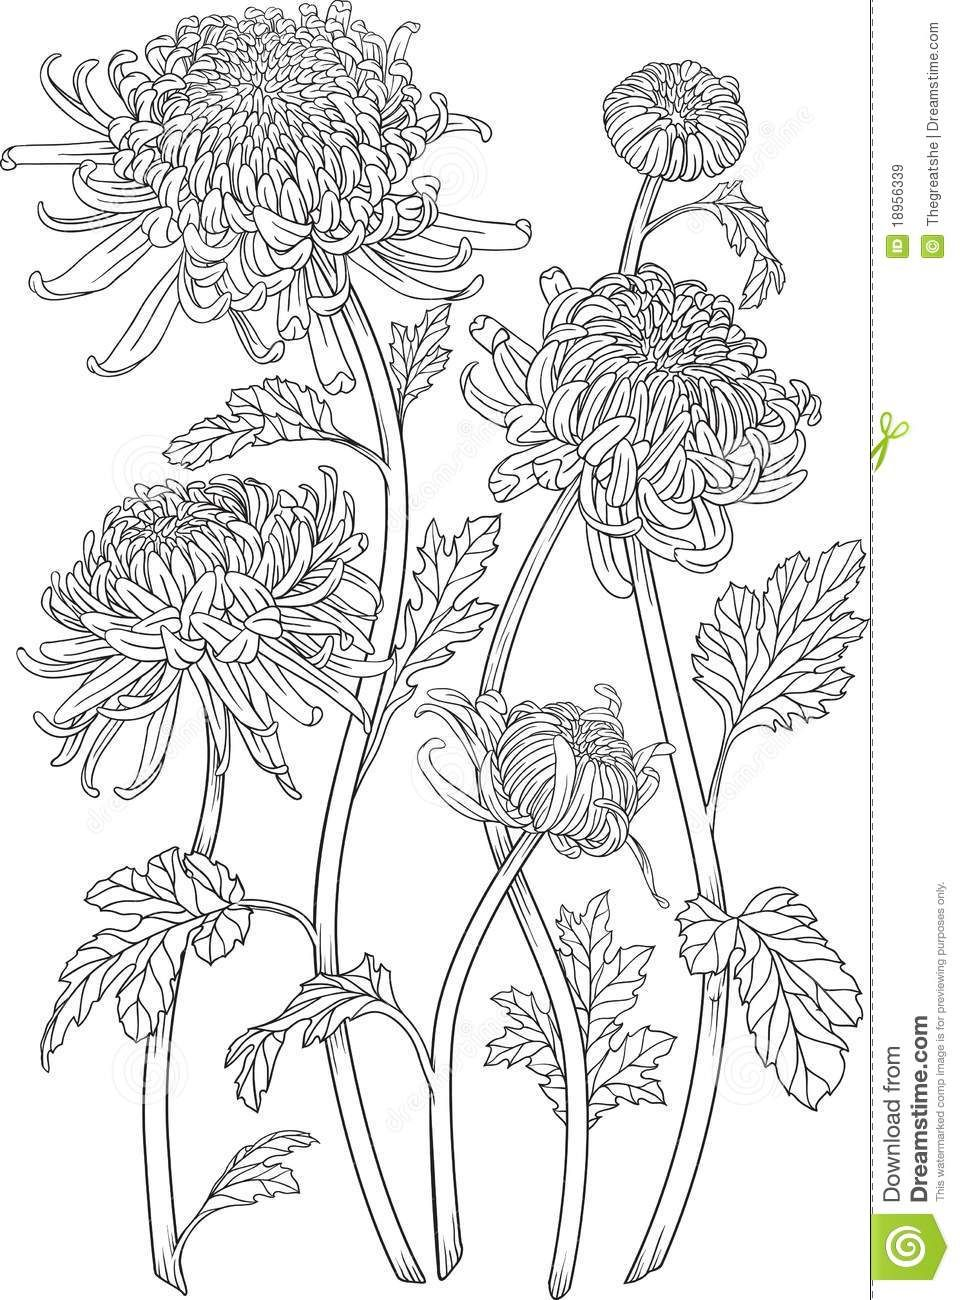 chrysanthemum flower drawing - Google Search | flowers ...